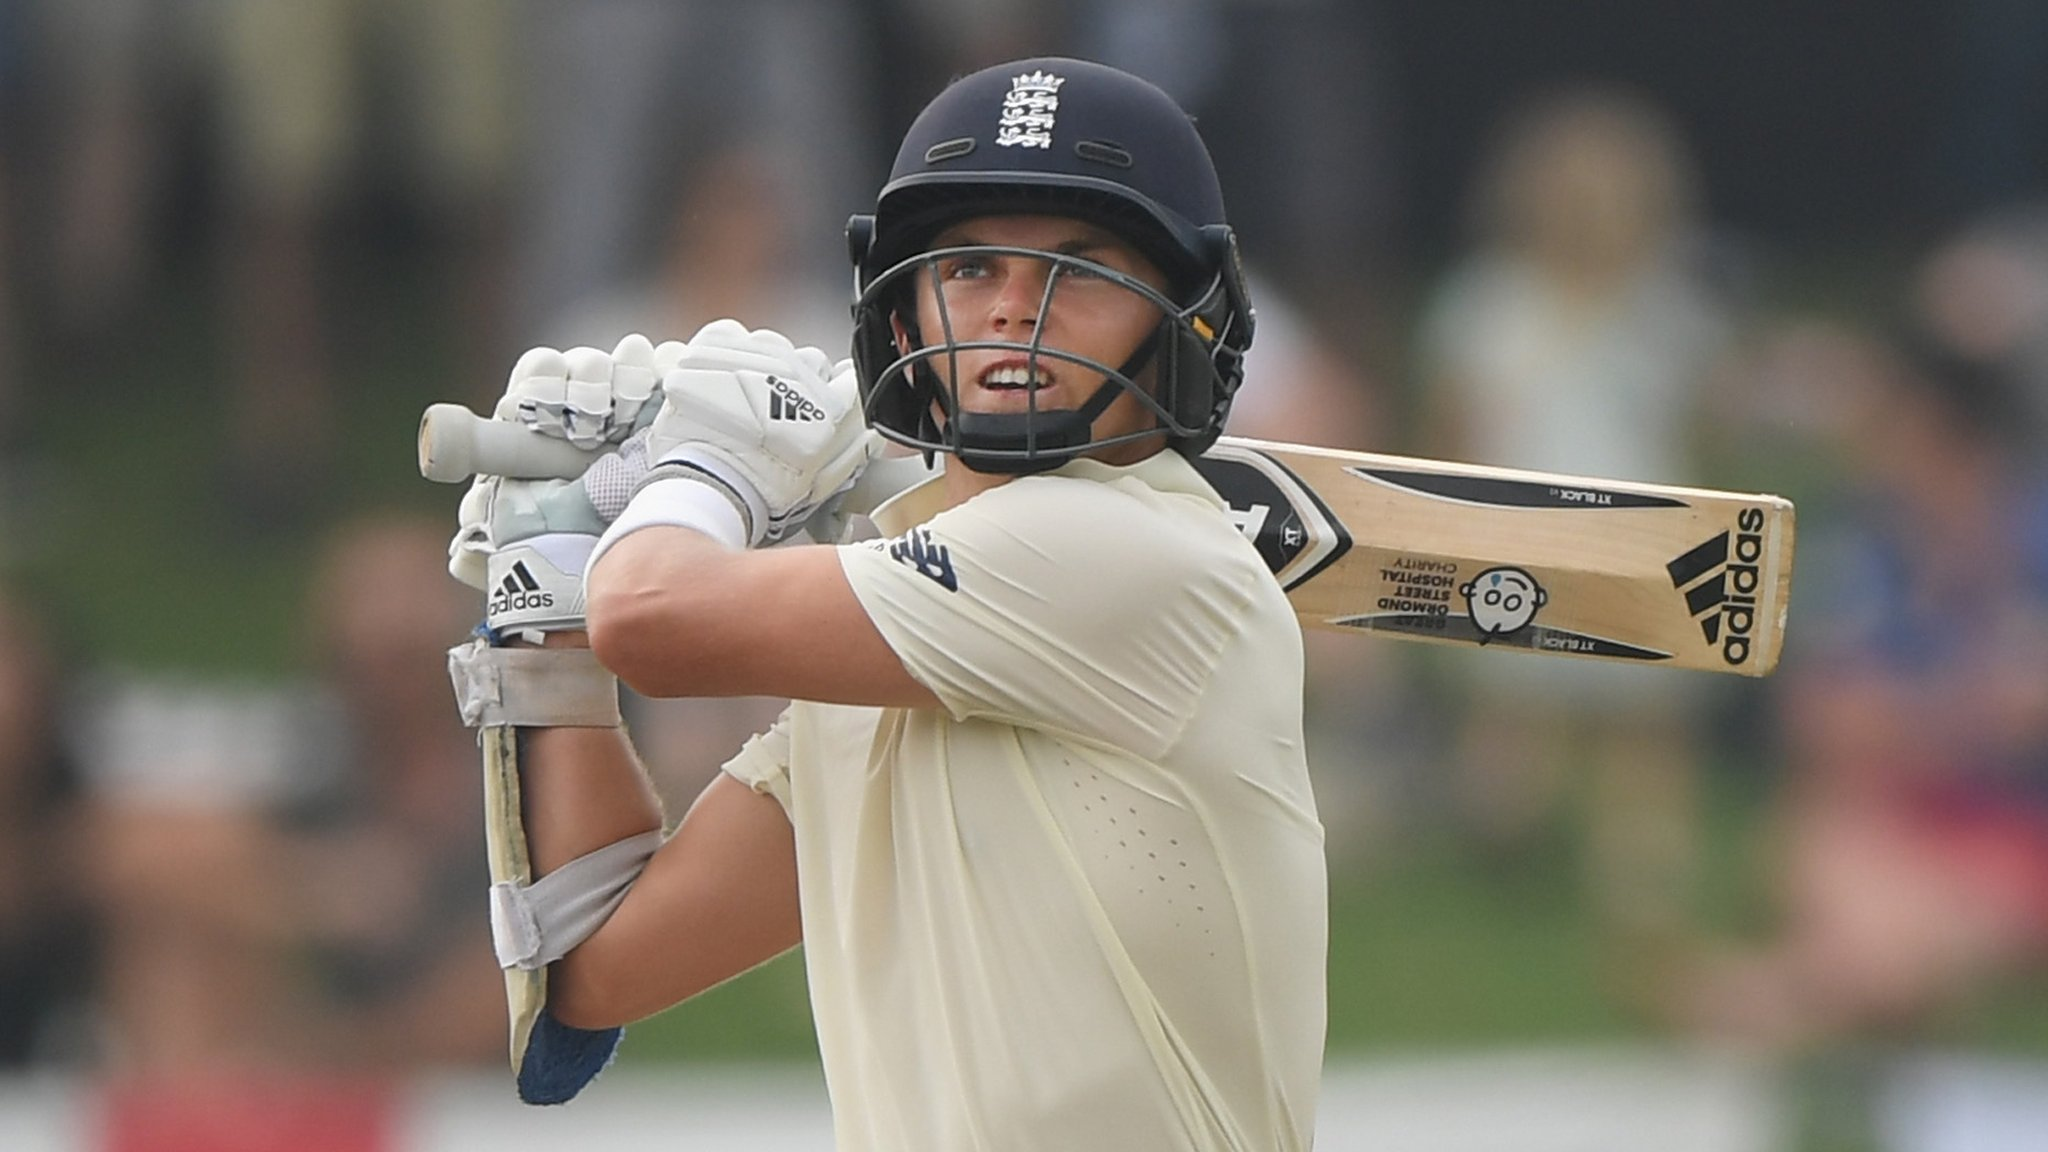 Sri Lanka v England: Jos Buttler and Sam Curran put England in promising position